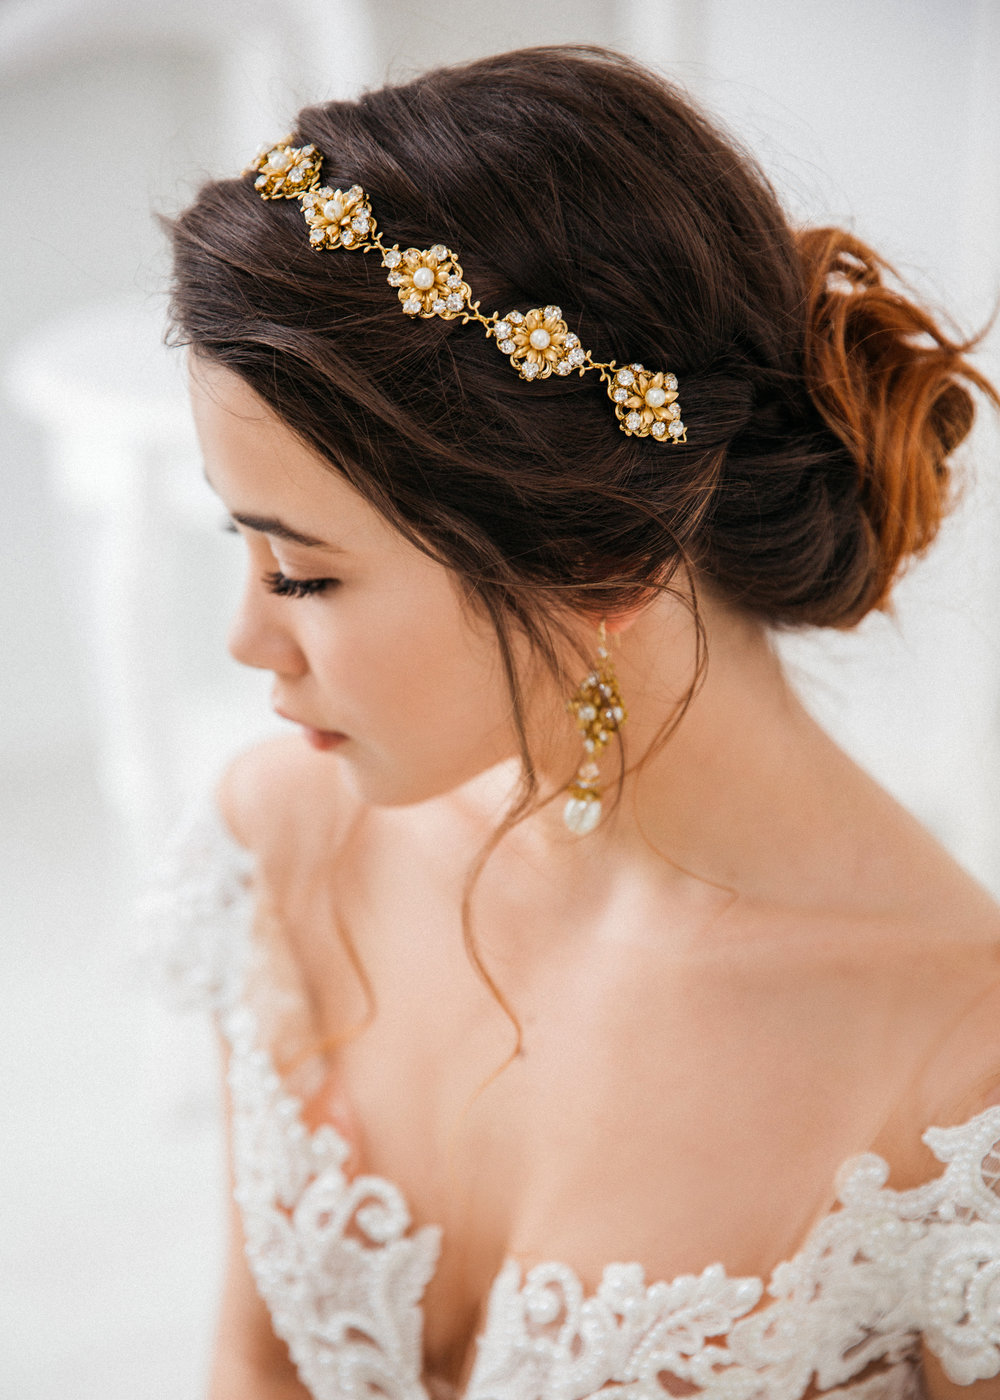 Find your perfect Wedding Hair Jewelry - Handmade in SwitzerlandUnique DesignPossibility to Rush OrdersFree Shipping WorldwideCustomisable OrdersFast response on your questions